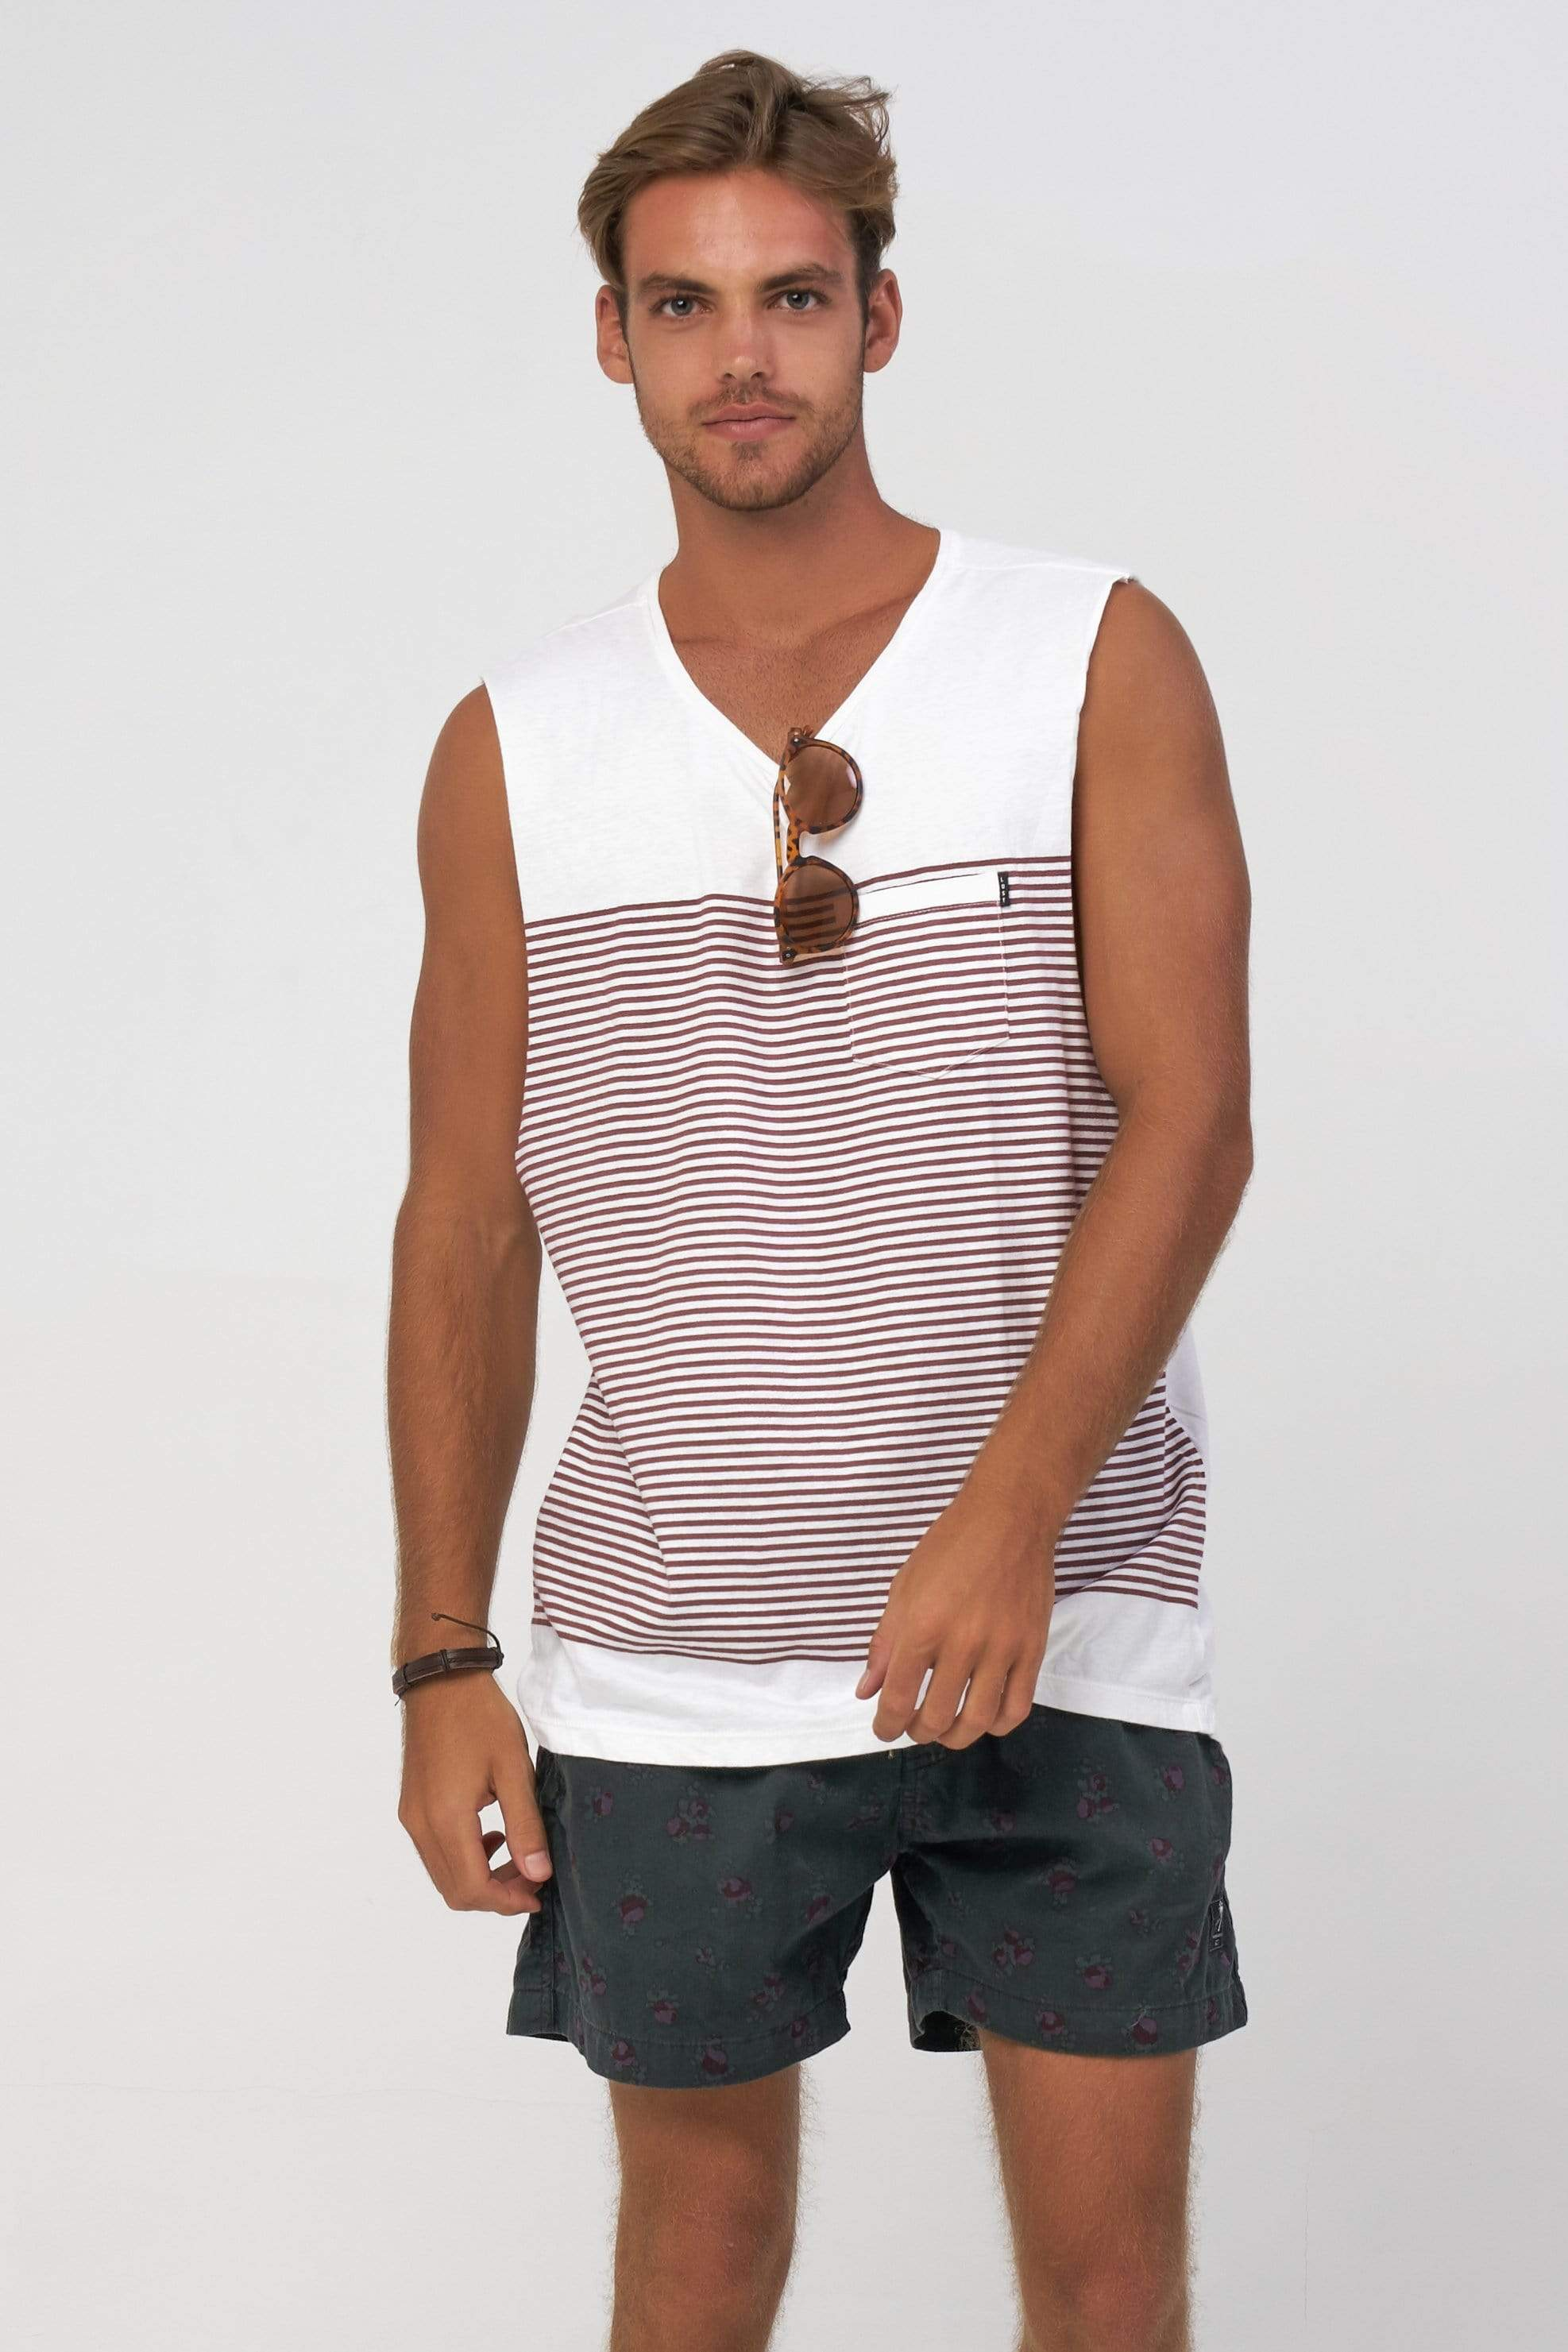 Ahoy Muscle - Mens Muscle Tank - LOST IN PARADISE